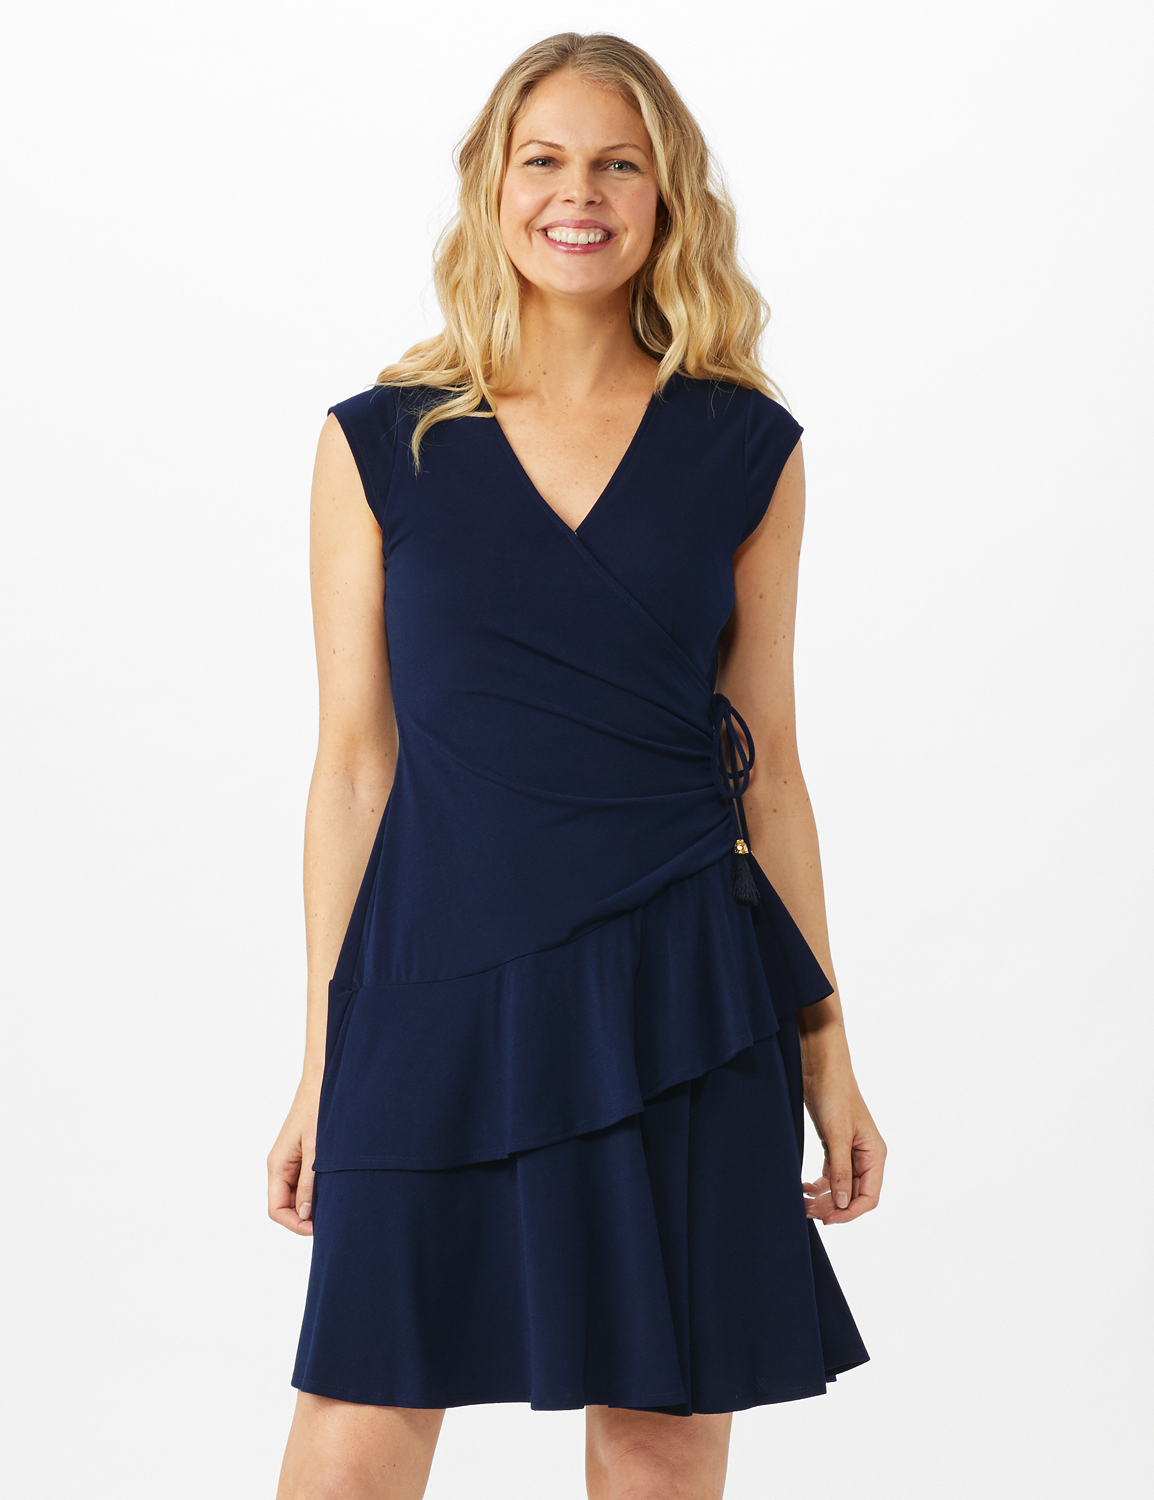 Faux Wrap with Side Tie Crepe Knit with Tiered Skirt - Navy - Front